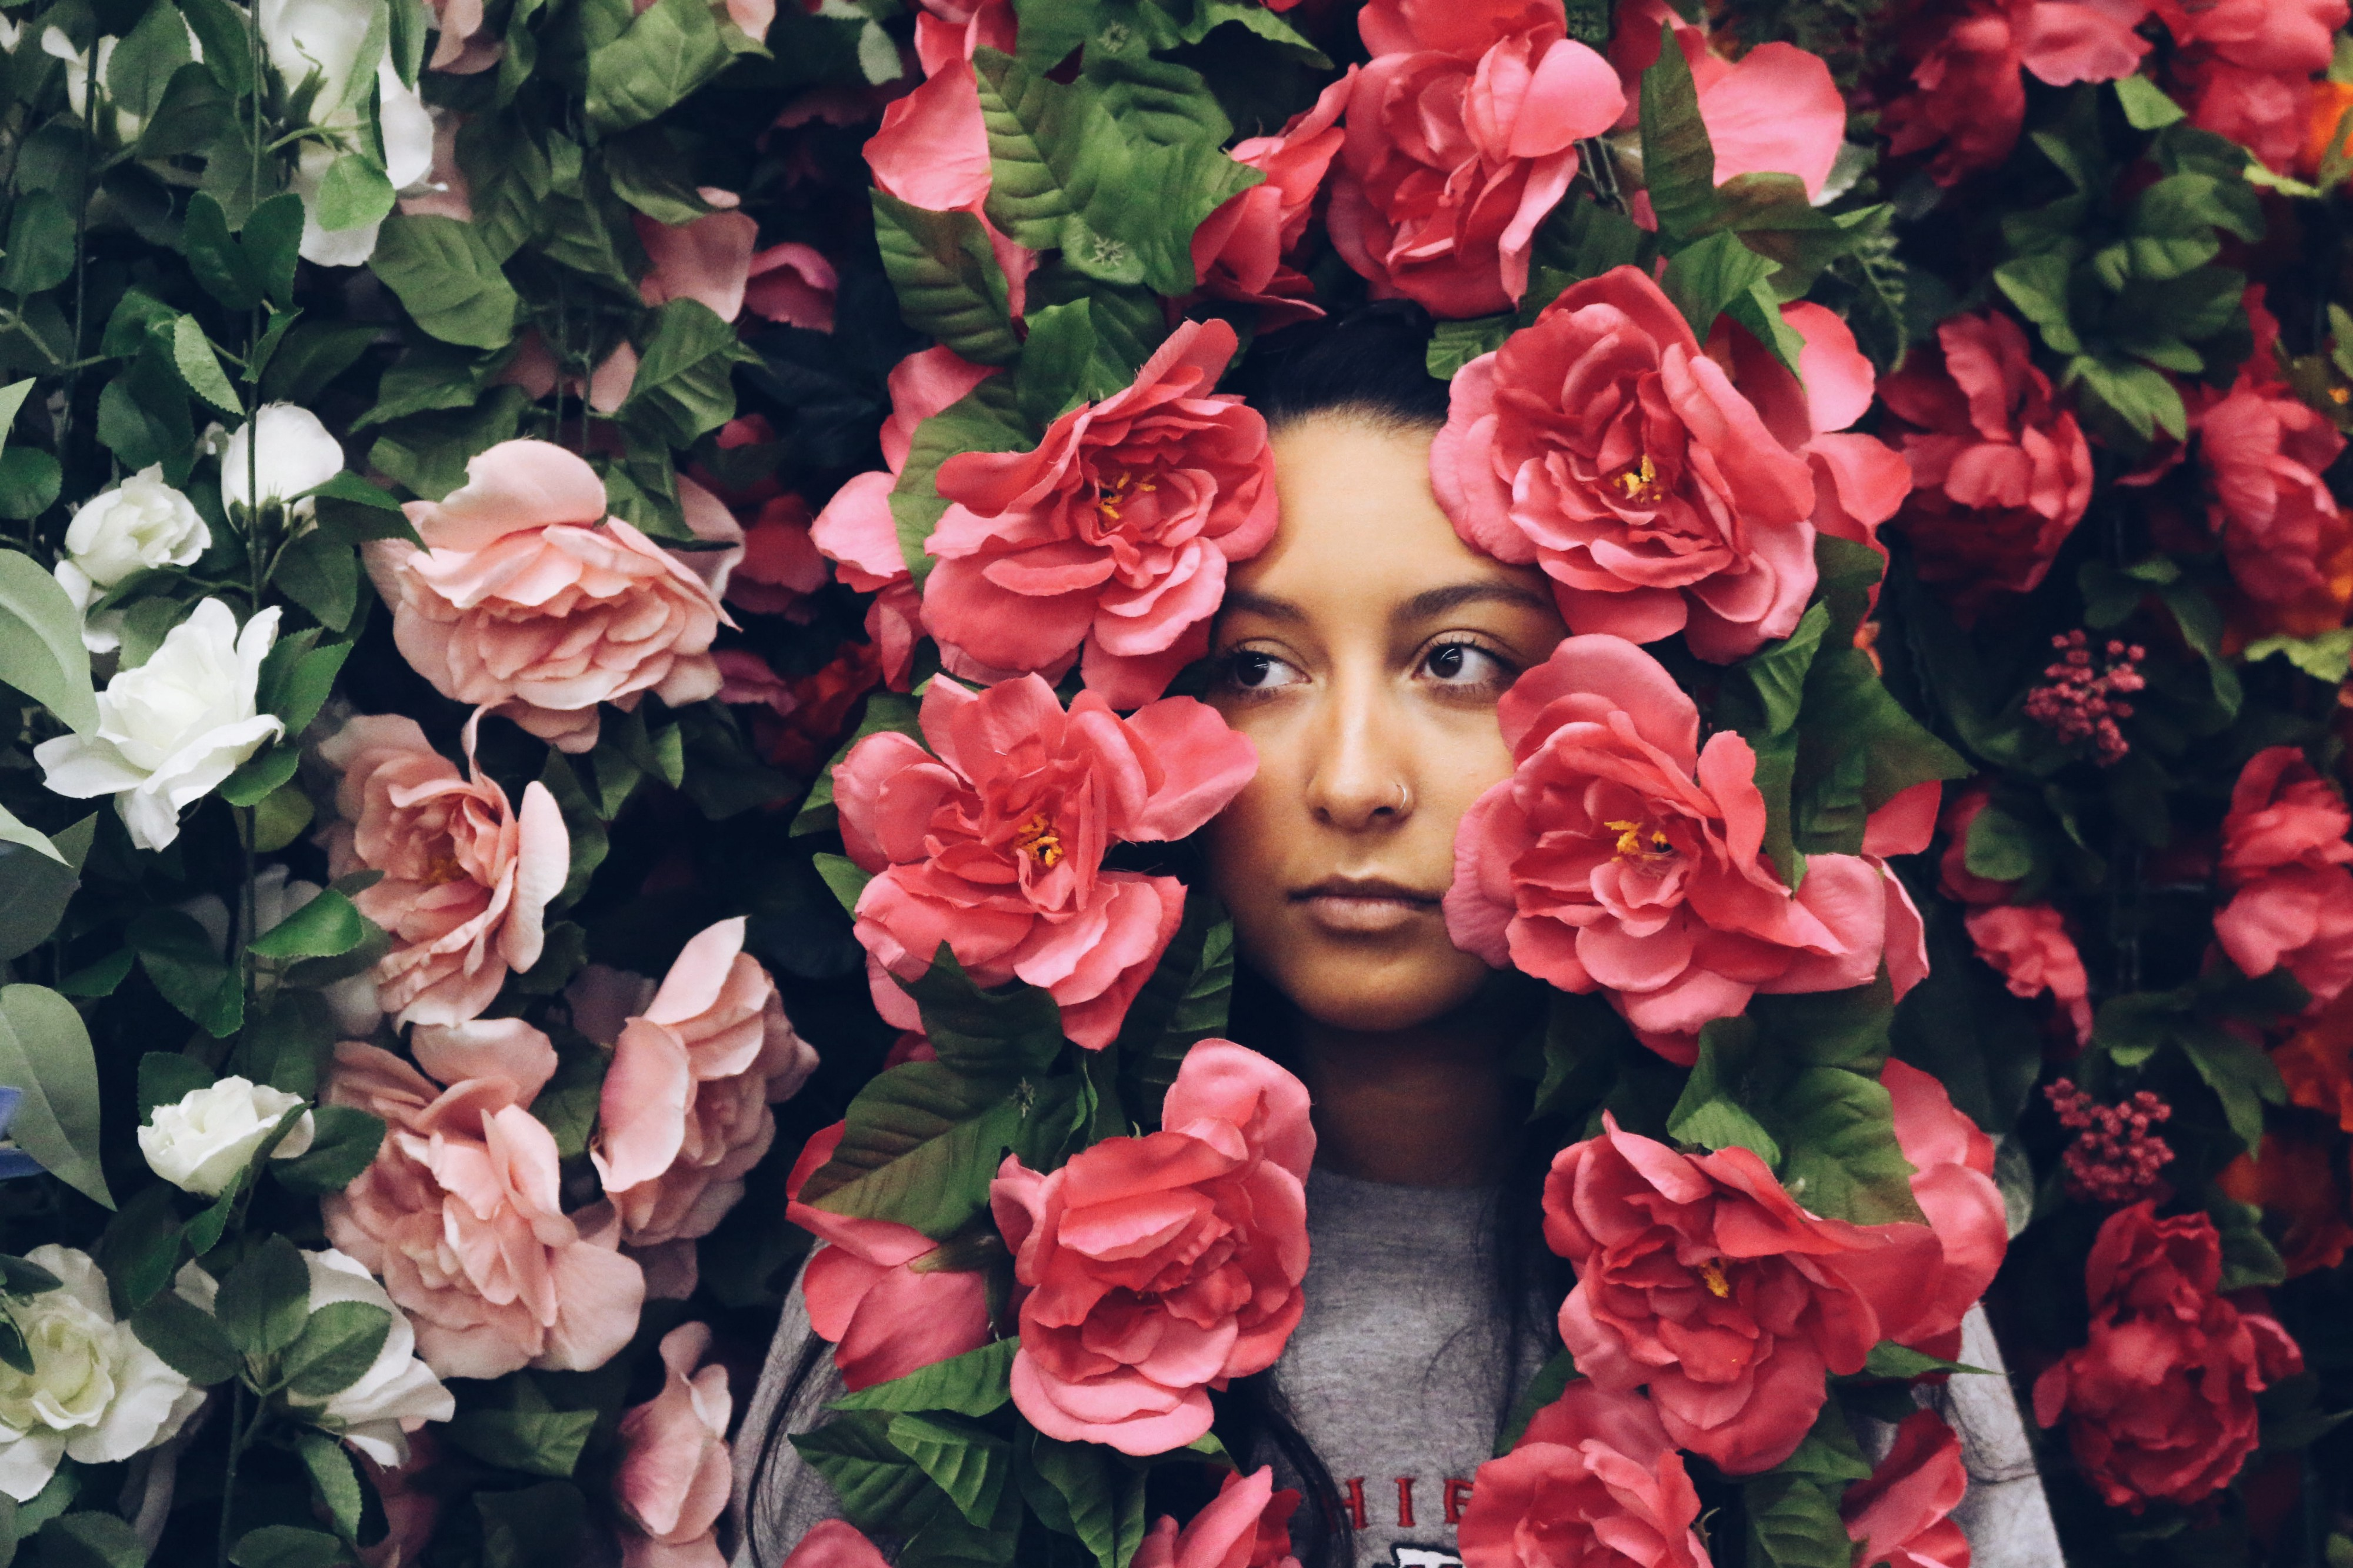 A woman stands amongst a wall of flowers, with the flowers cascading around her face. She looks thoughtful.